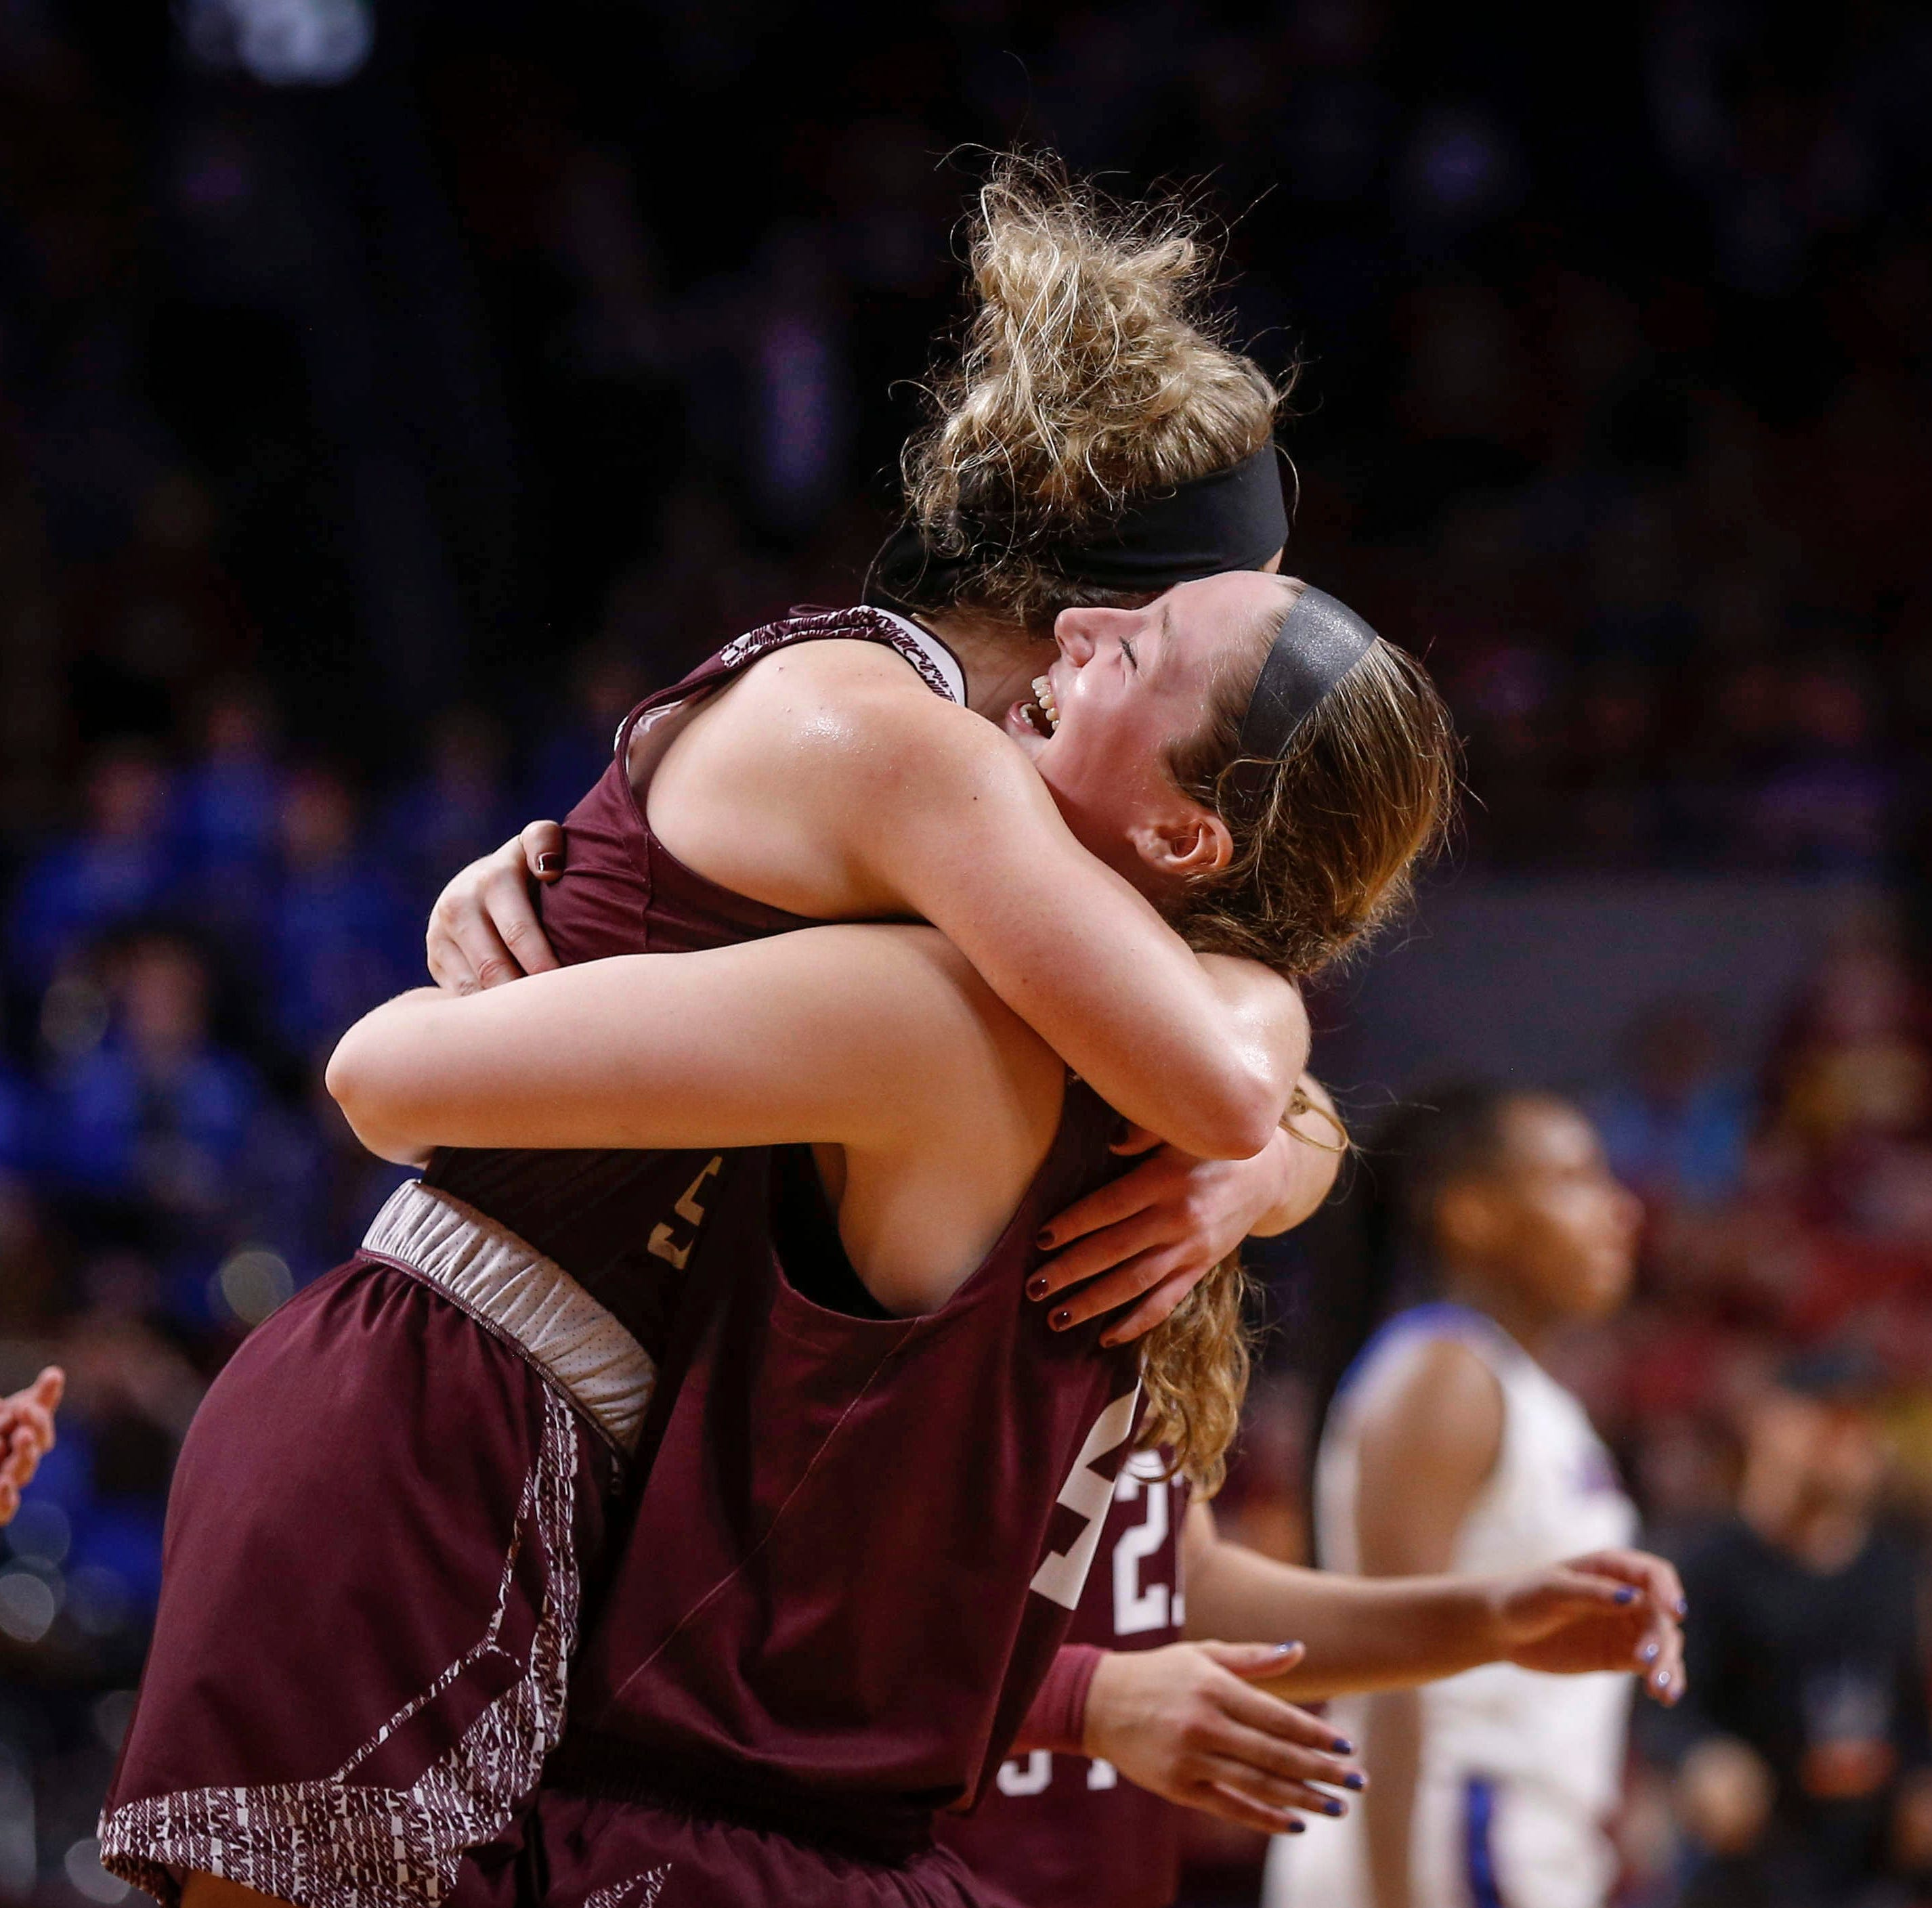 Moving on! MSU Lady Bears upset DePaul to advance to NCAA Tournament Round of 32